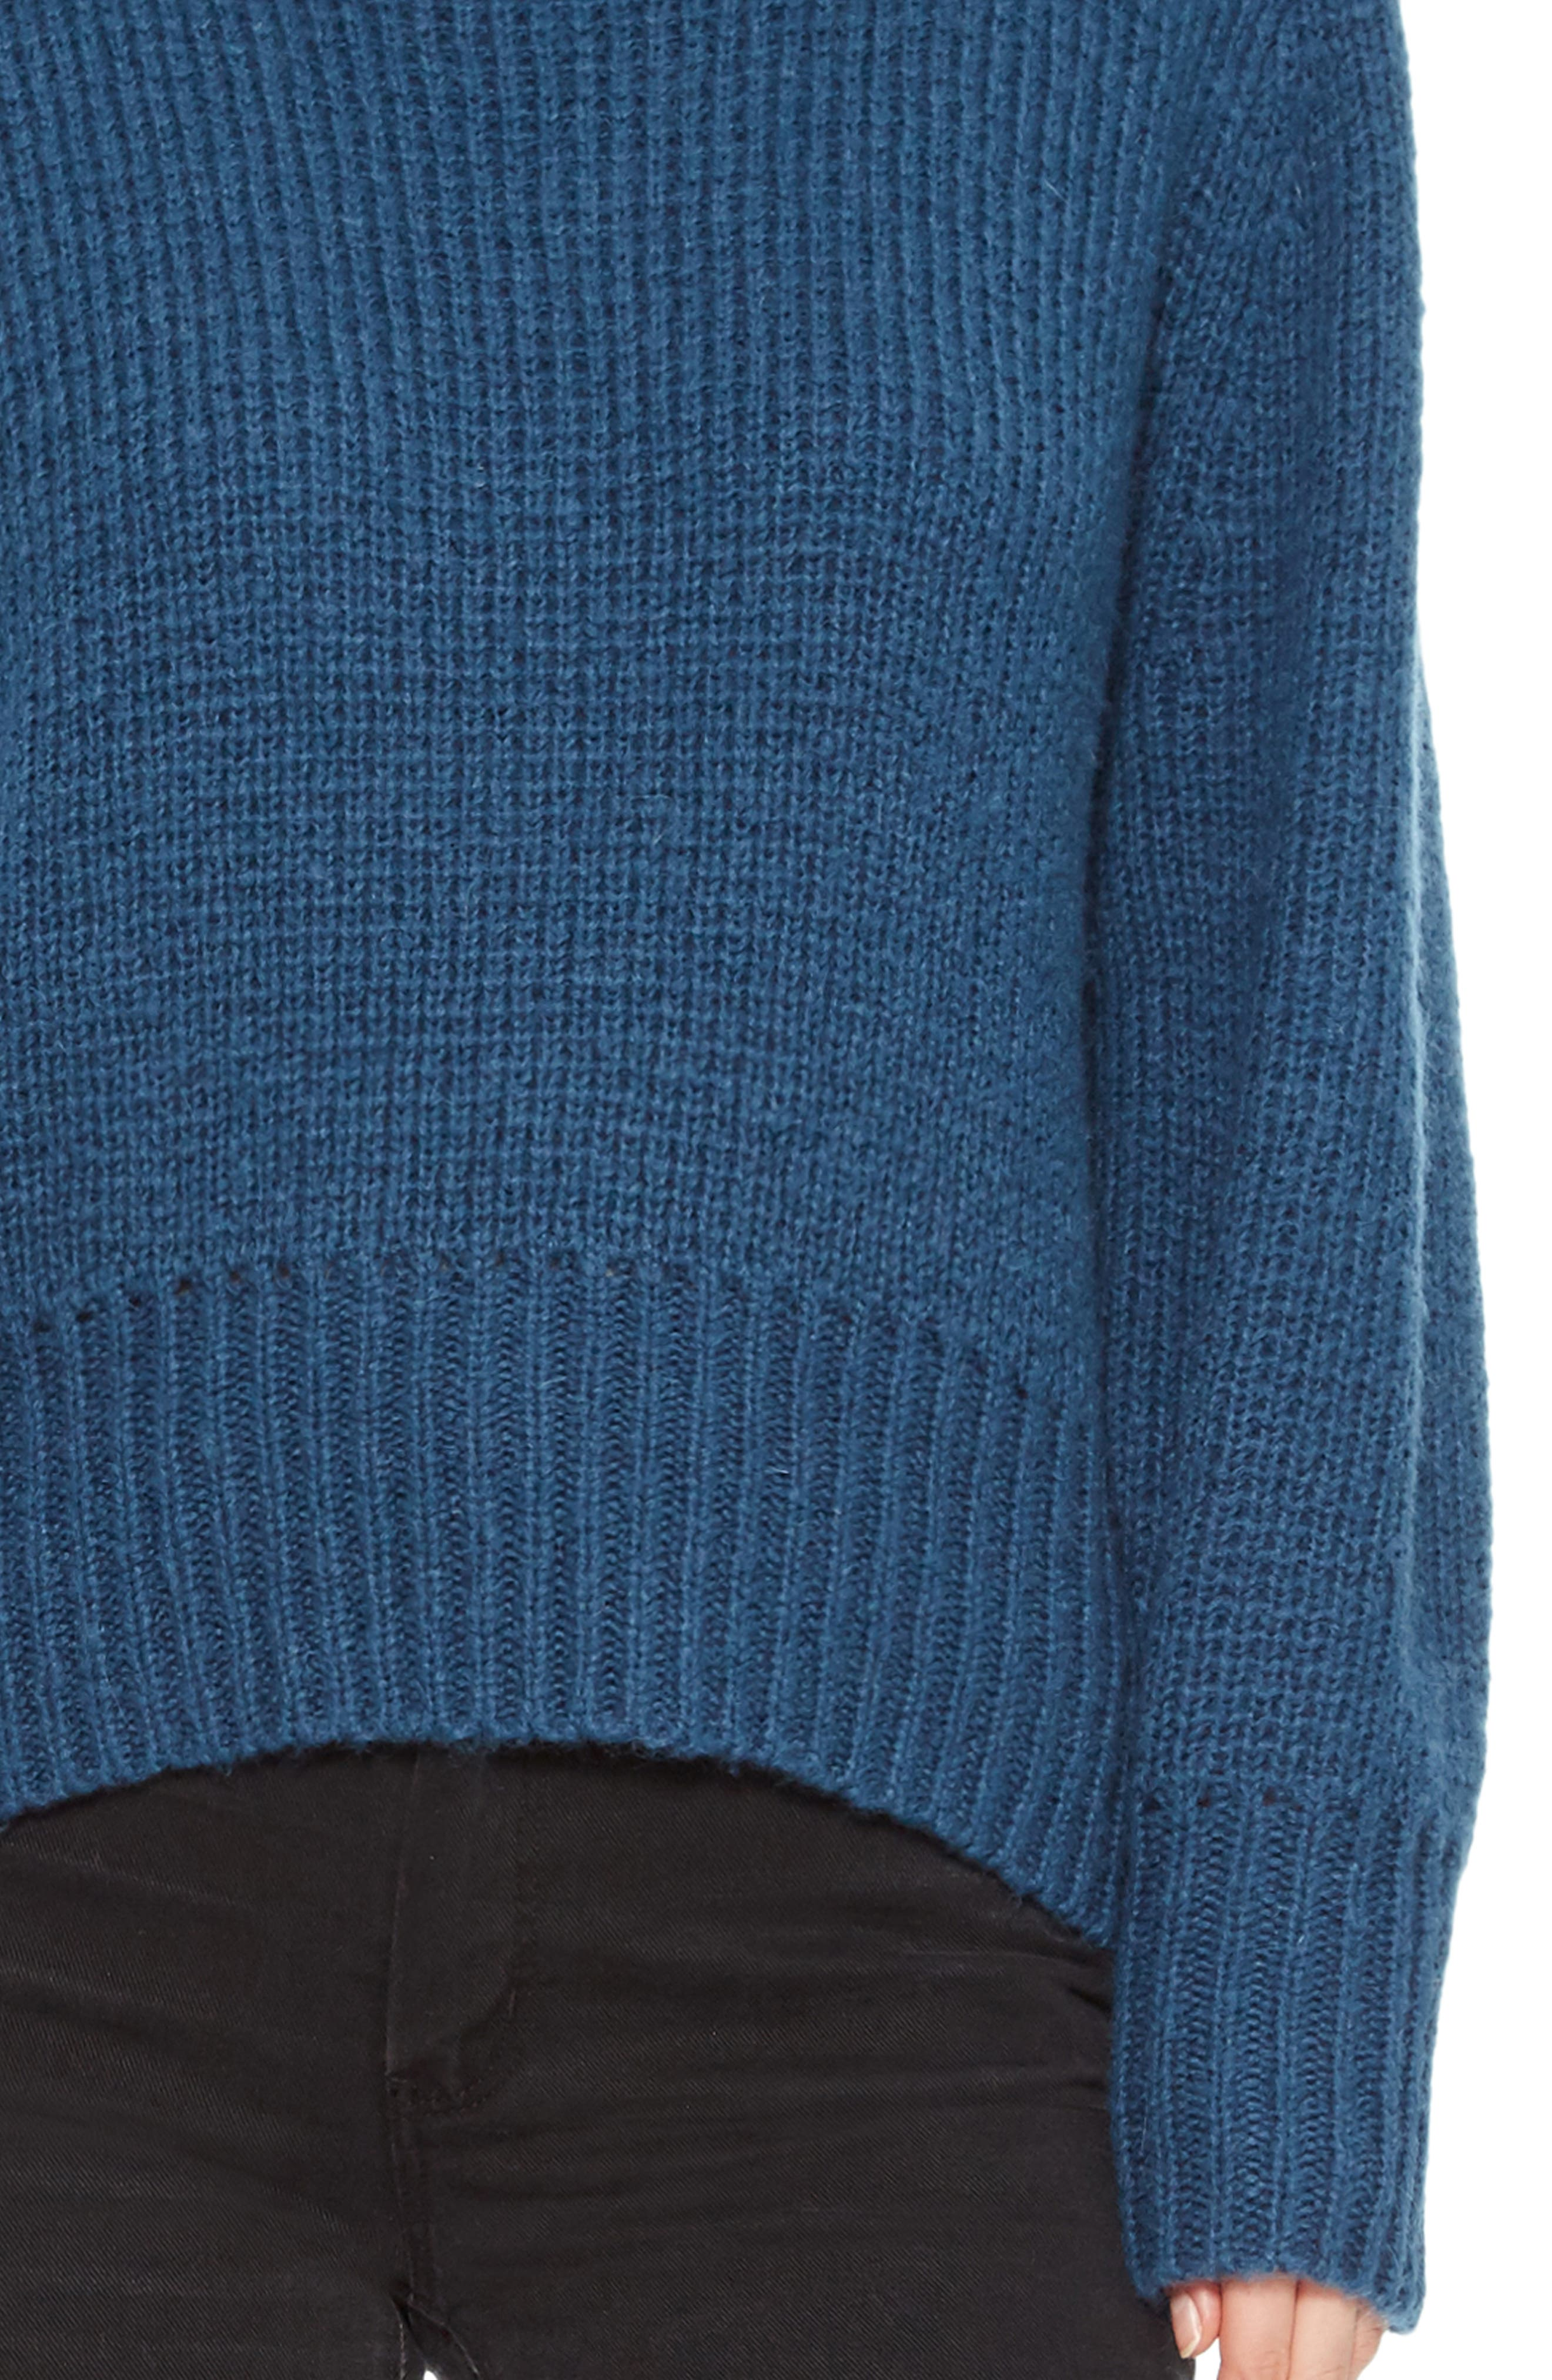 Matty Bow Back Sweater,                             Alternate thumbnail 4, color,                             449